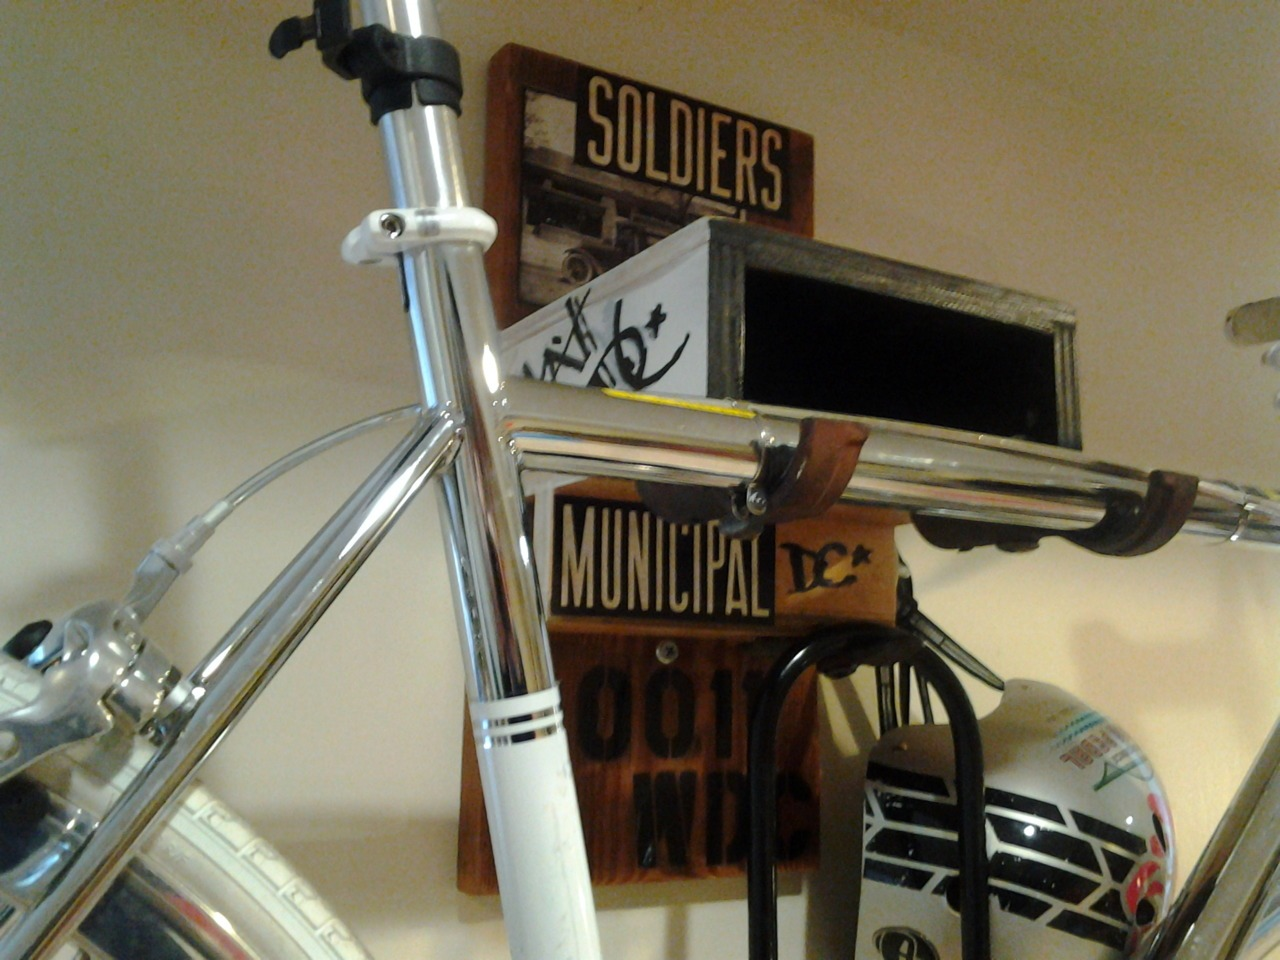 Custom bike shelf installed near the Soldier's Home in DC today.